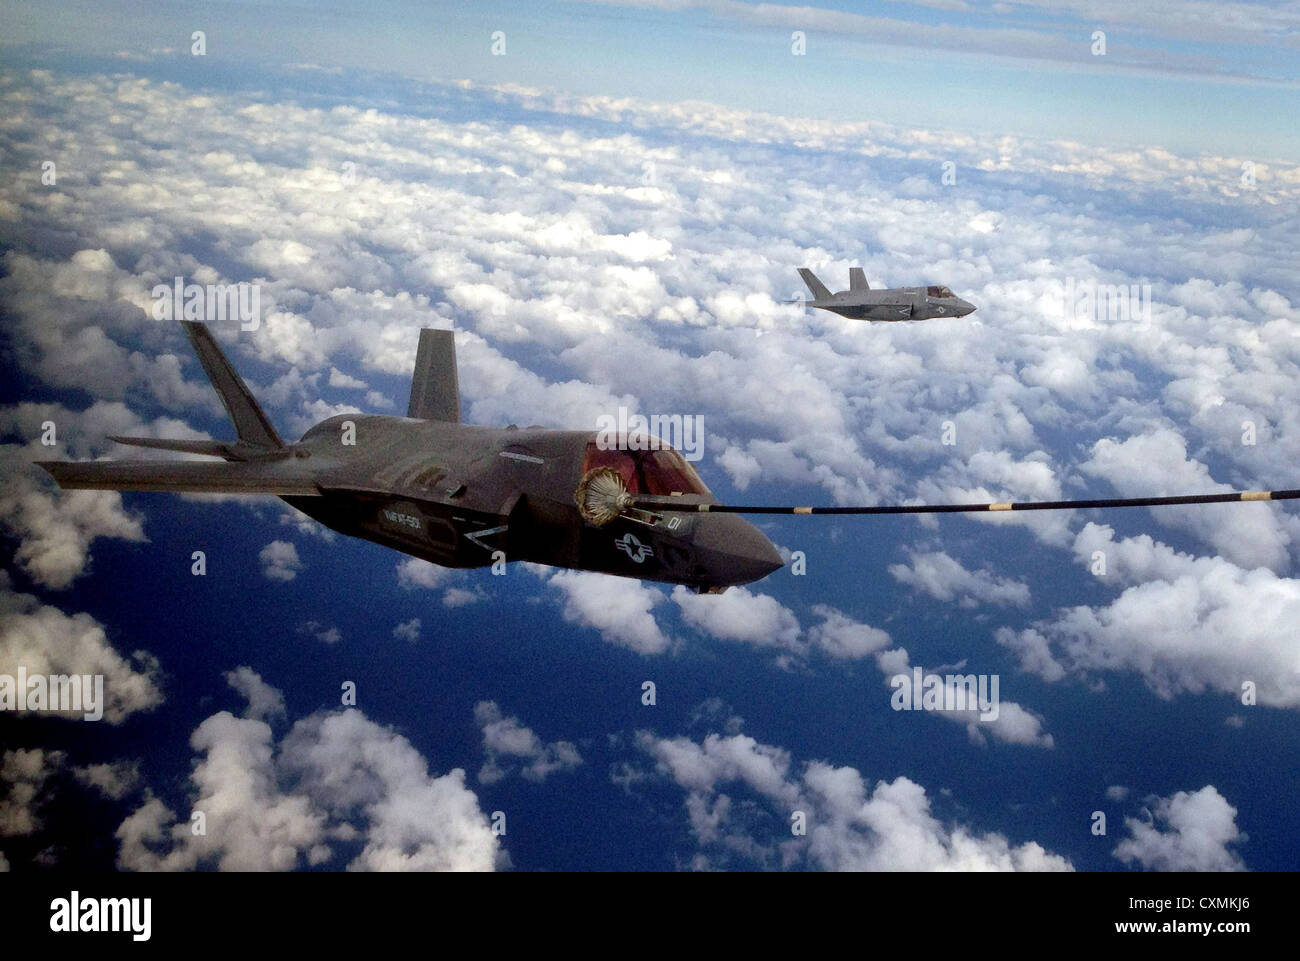 Two US Marine Corps F-35B Joint Strike Fighters conduct the first aerial refueling of its kind with a KC-130J Hercules - Stock Image